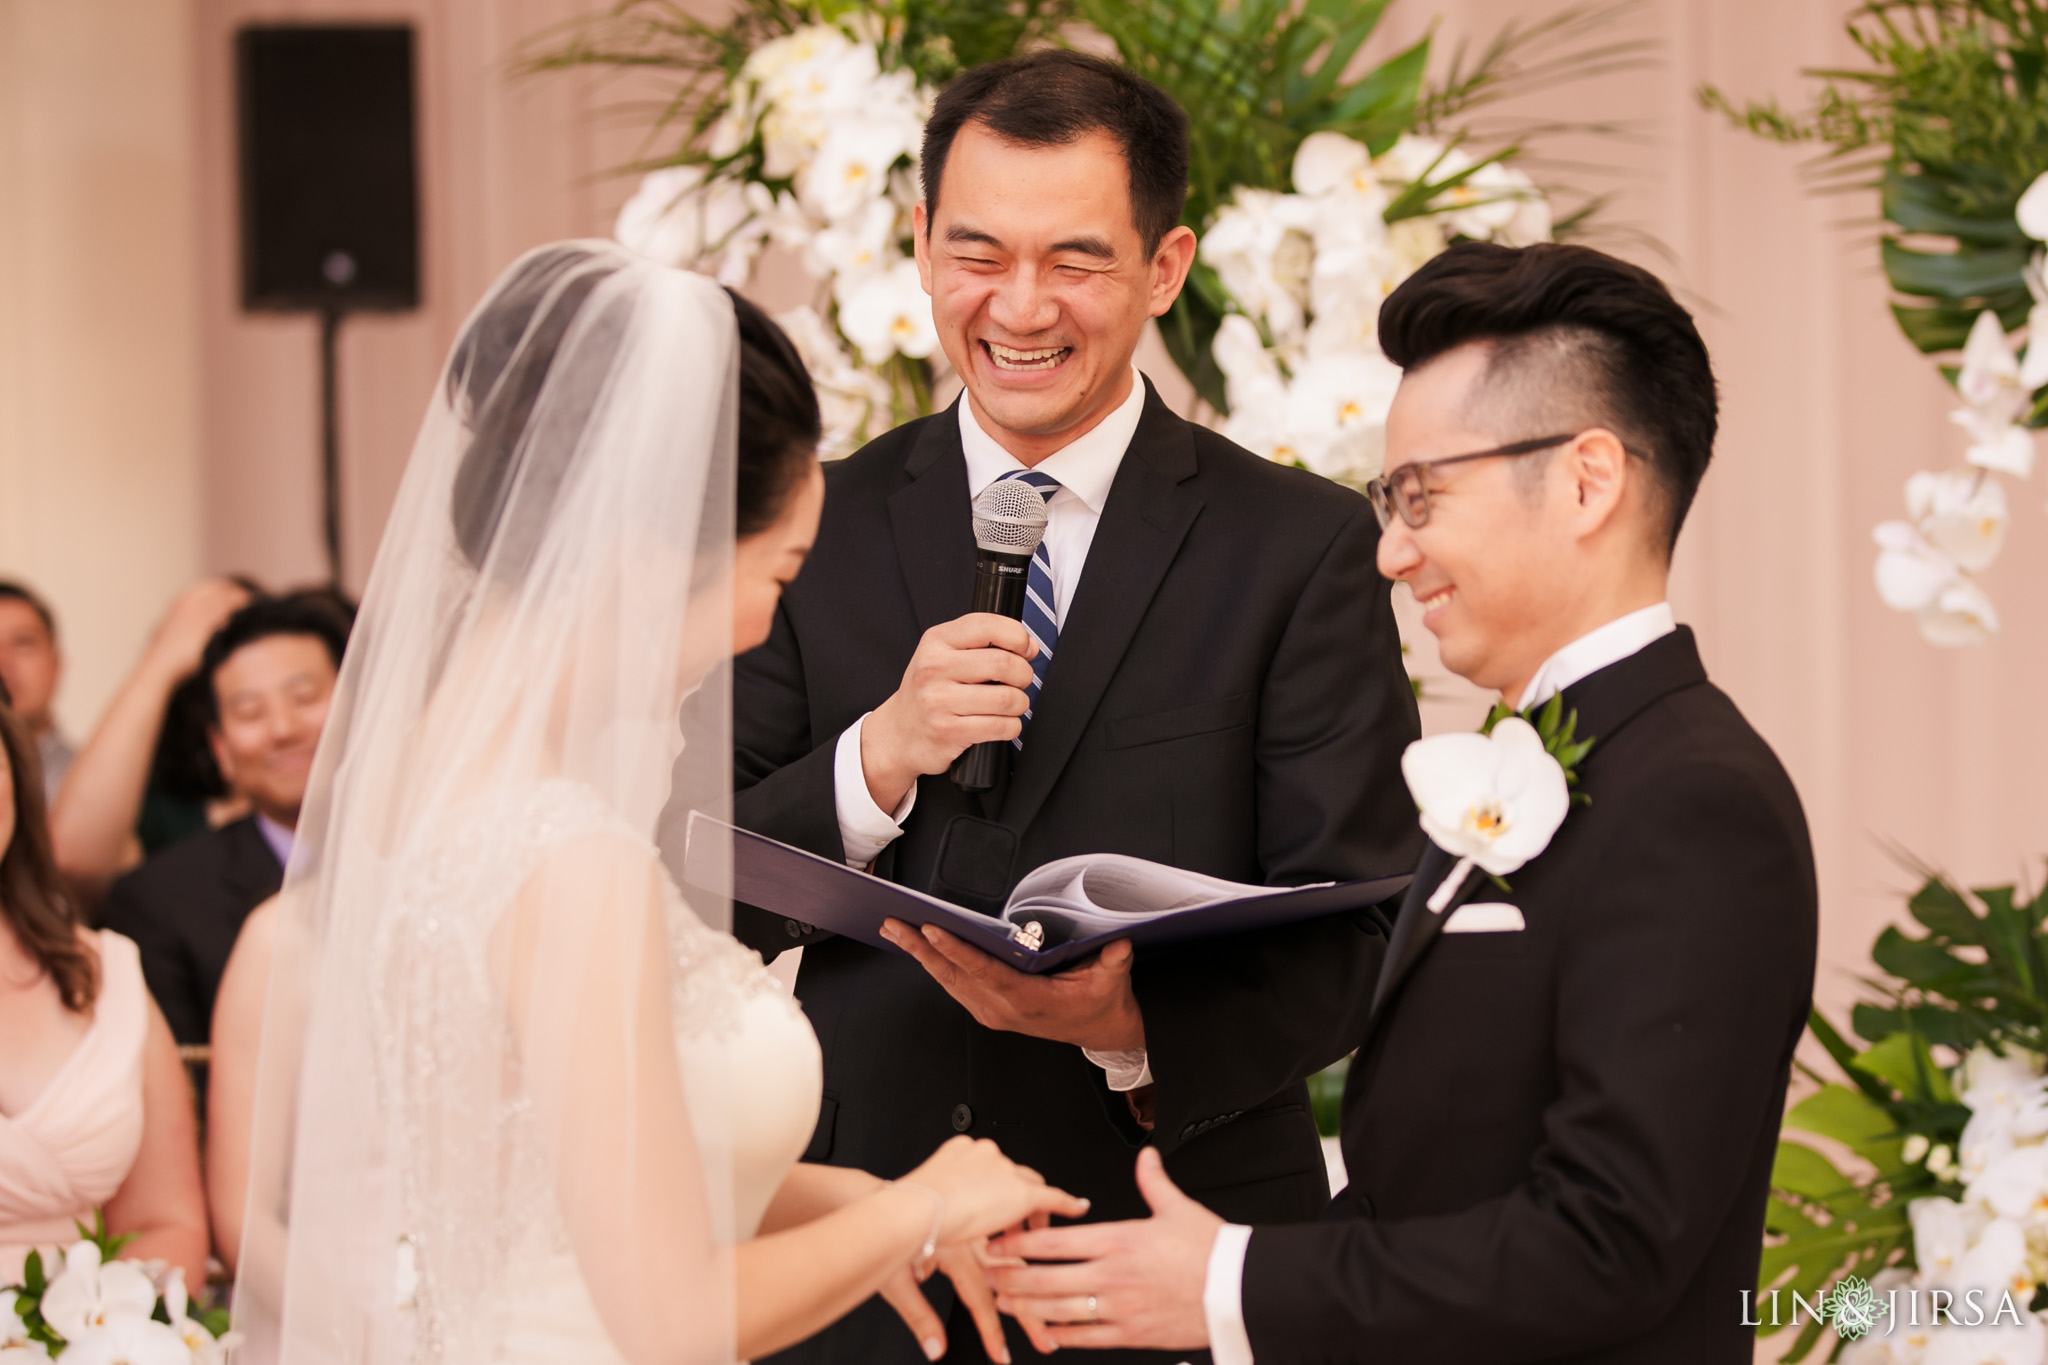 26 segerstrom center for the arts costa mesa wedding photography